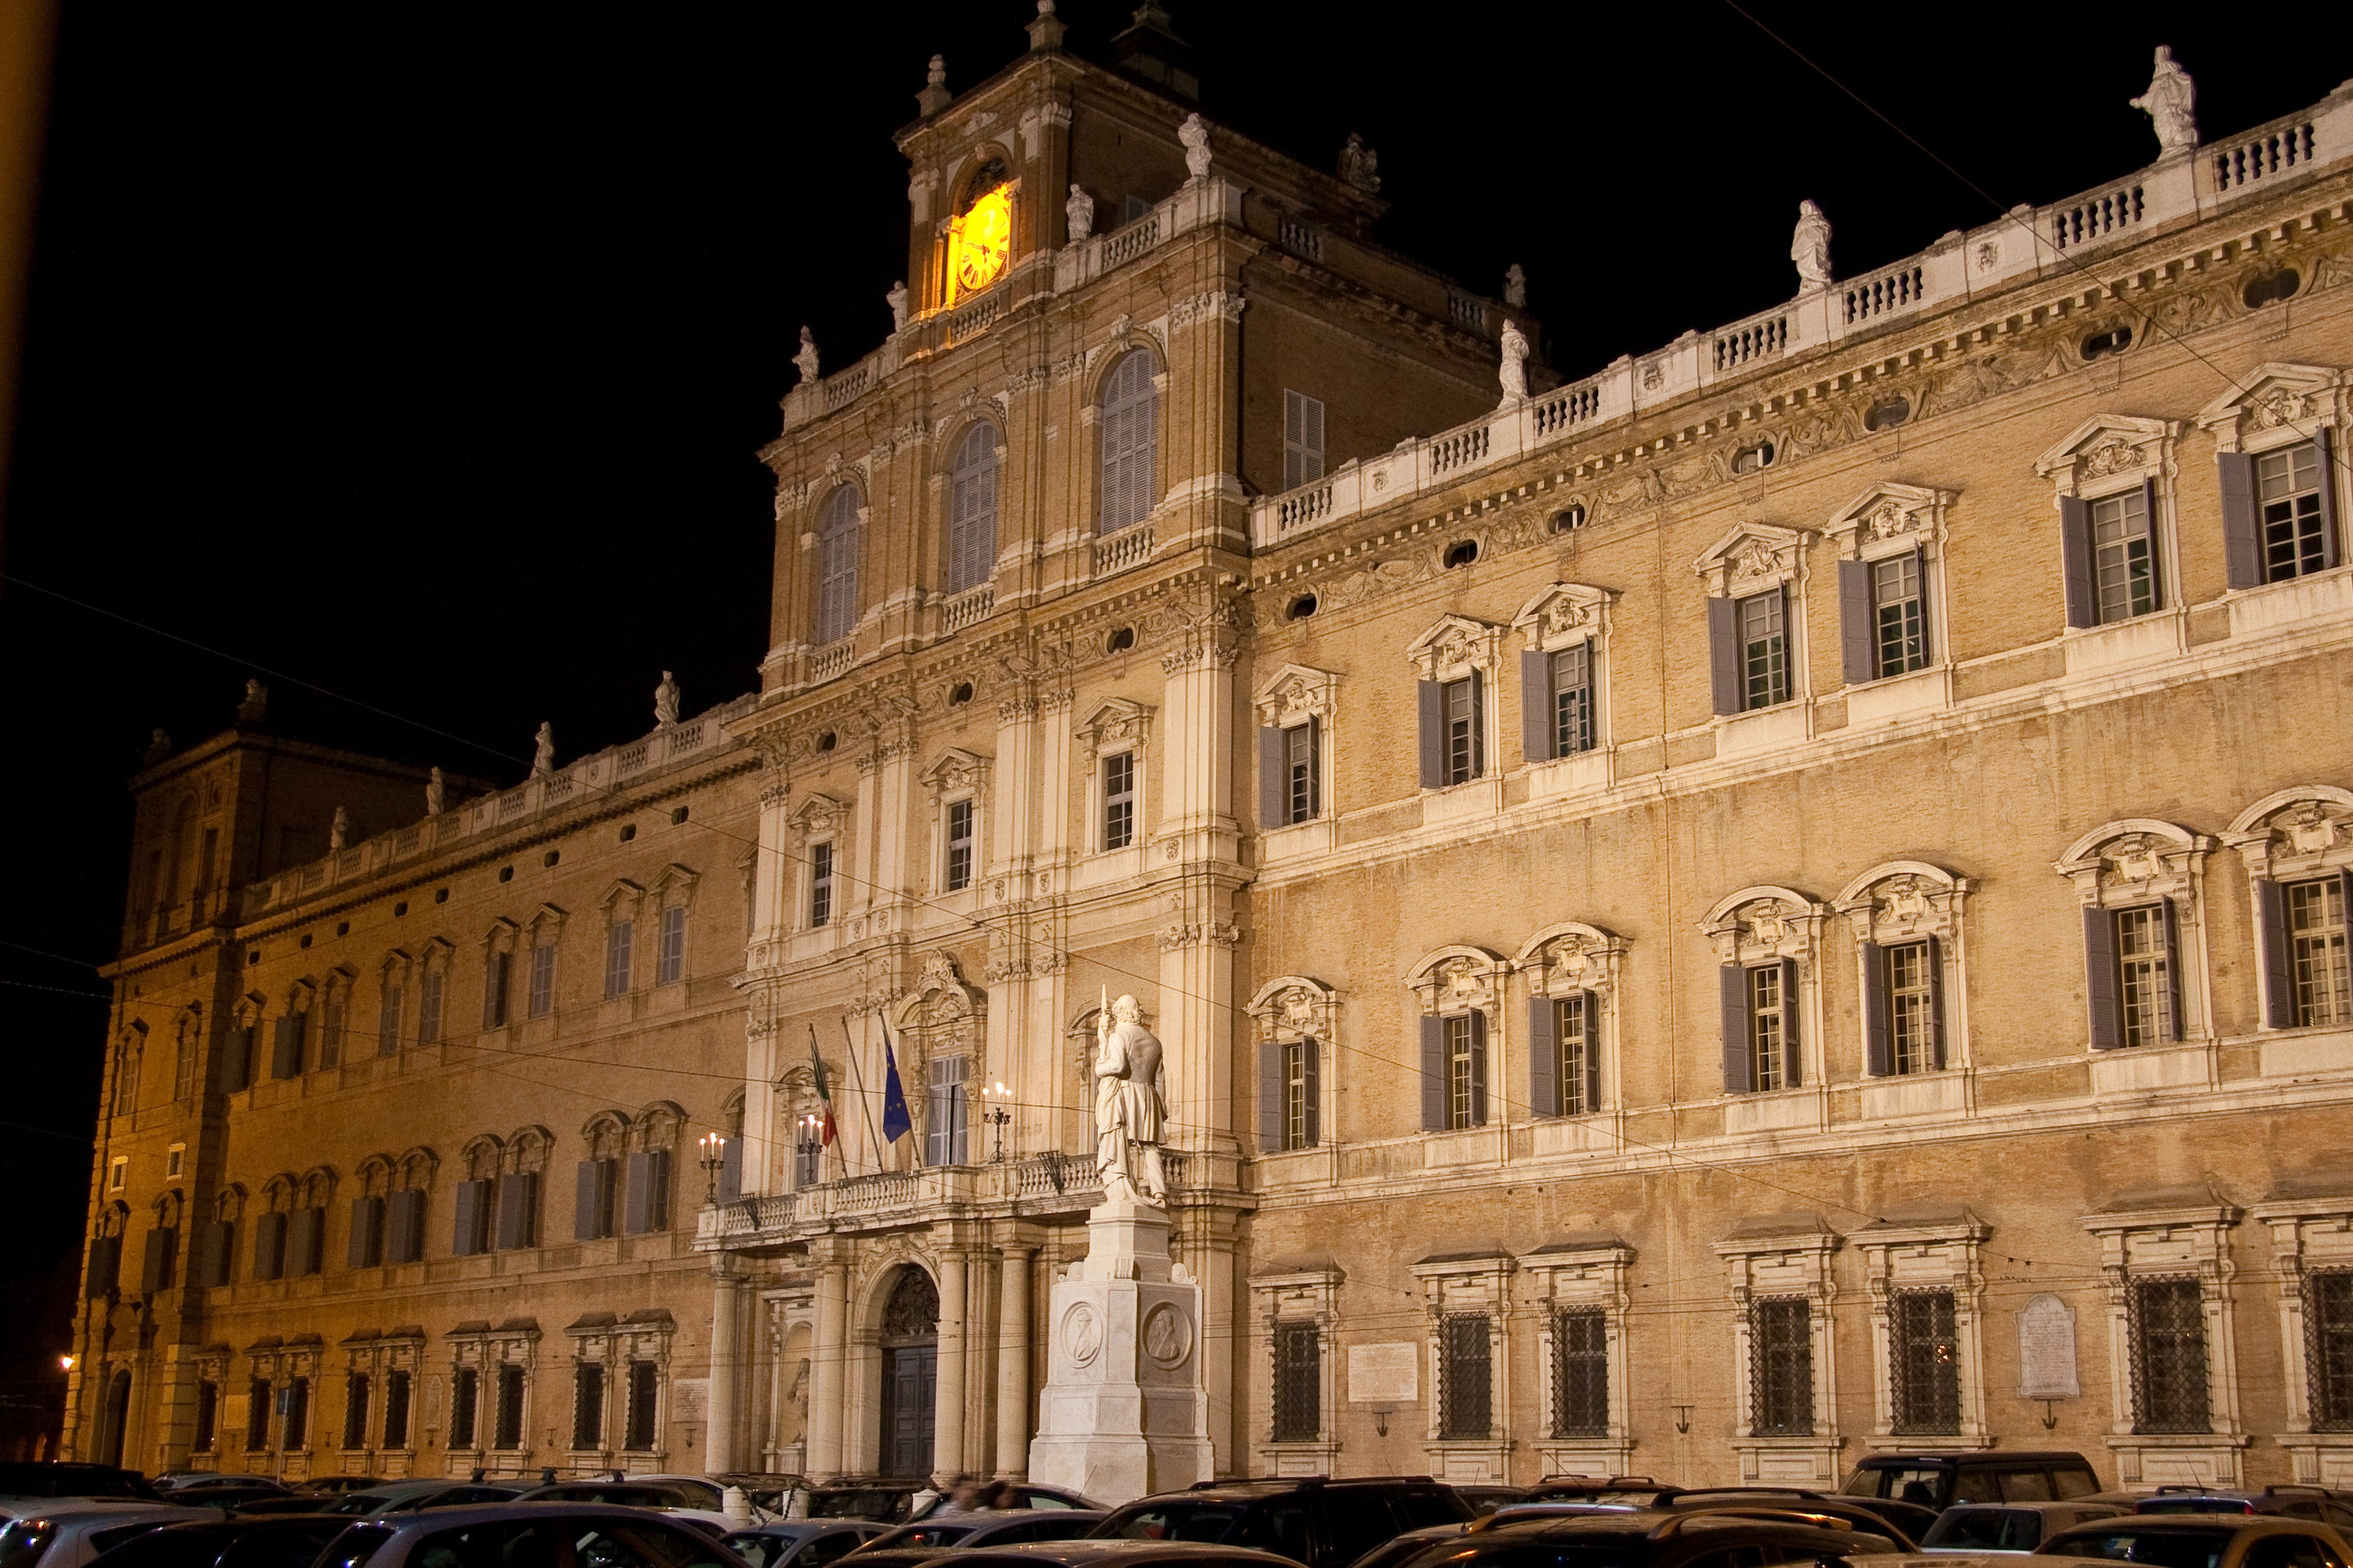 Palazzo_ducale_notte_Modena